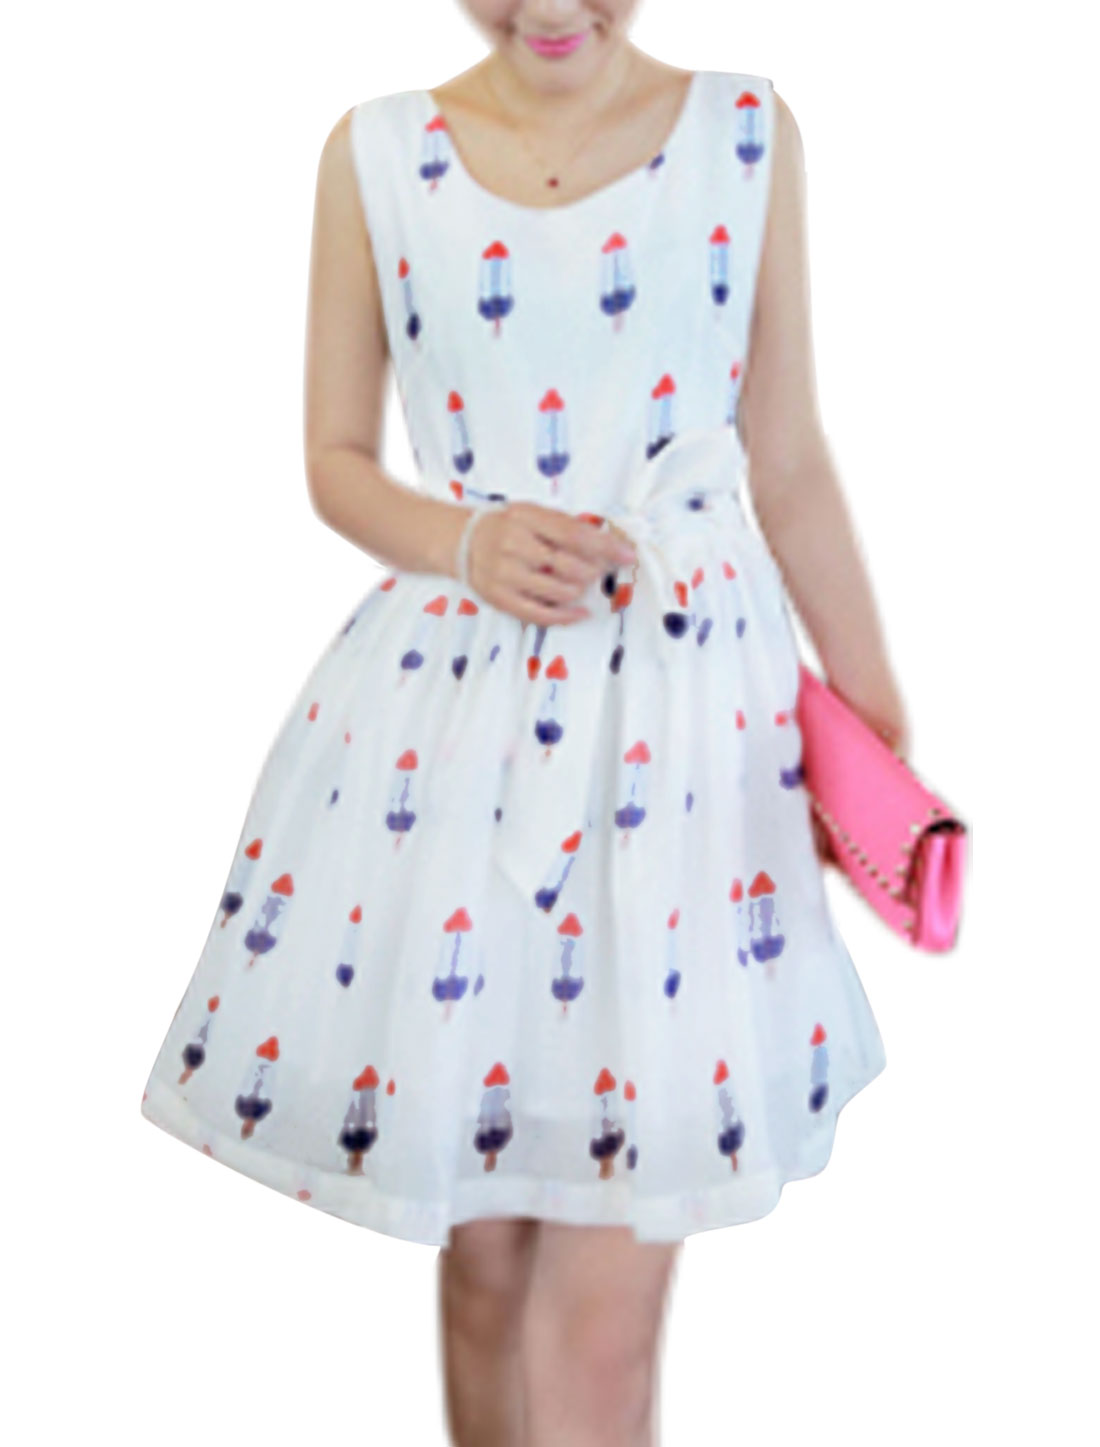 Lady's Sleeveless Ice Cream Pattern Self Tie Strap Waist Short Dress White S